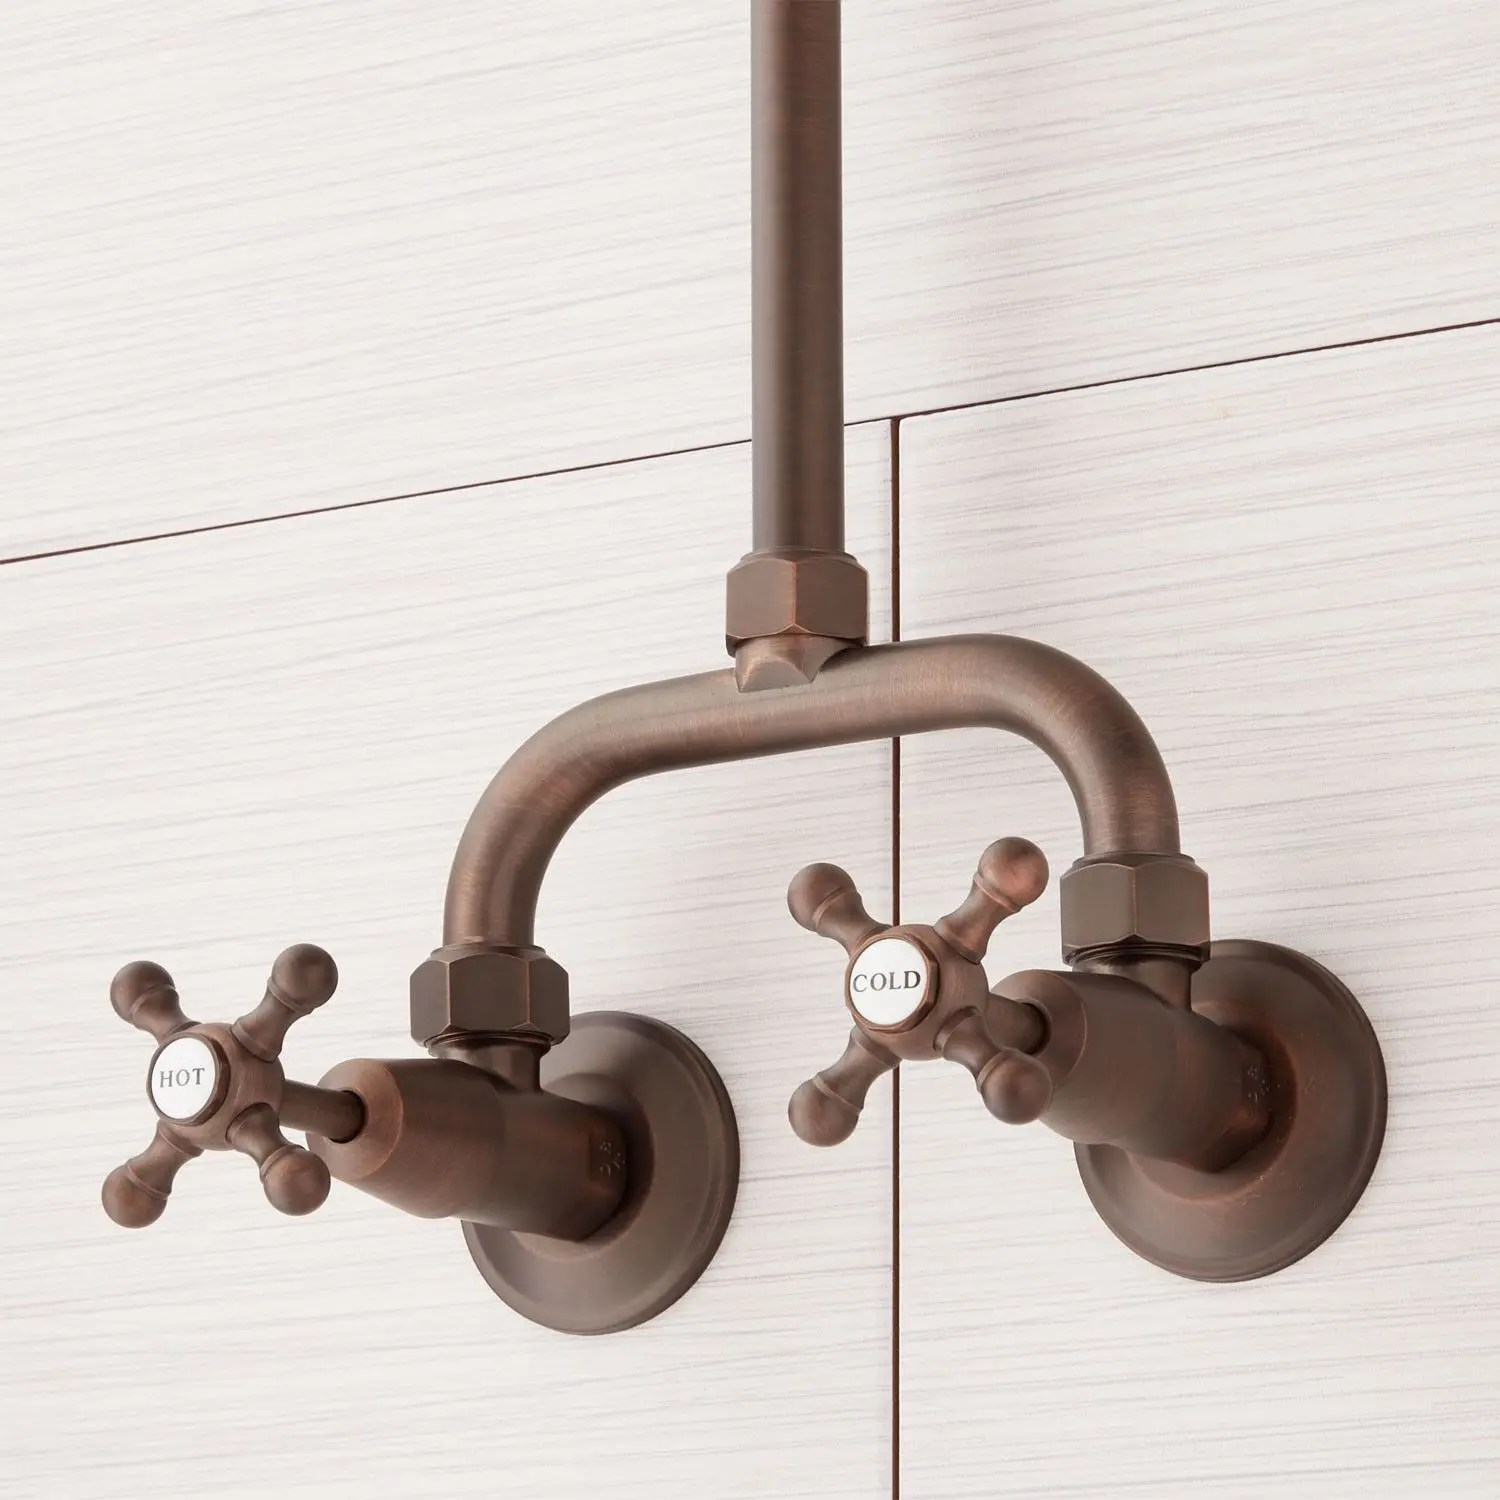 baudette exposed pipe wall mount shower with rainfall shower head